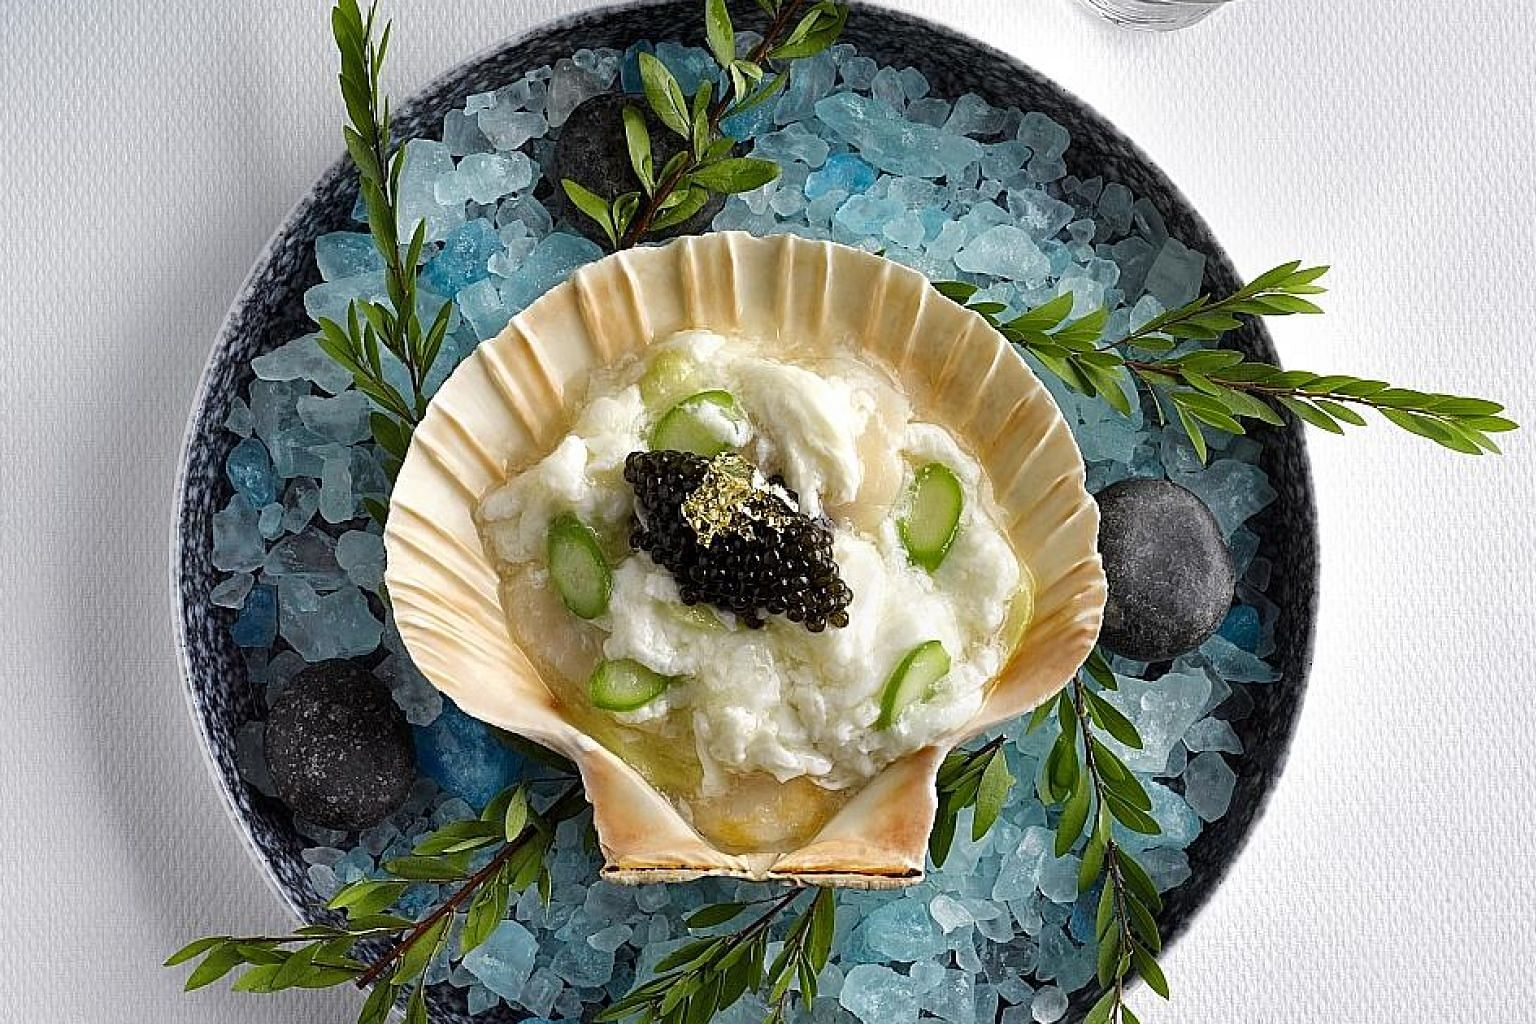 The slow-cooked Hokkaido scallop, wok-fried with organic egg white and summer asparagus and topped with oscietra caviar, is a familiar dish.